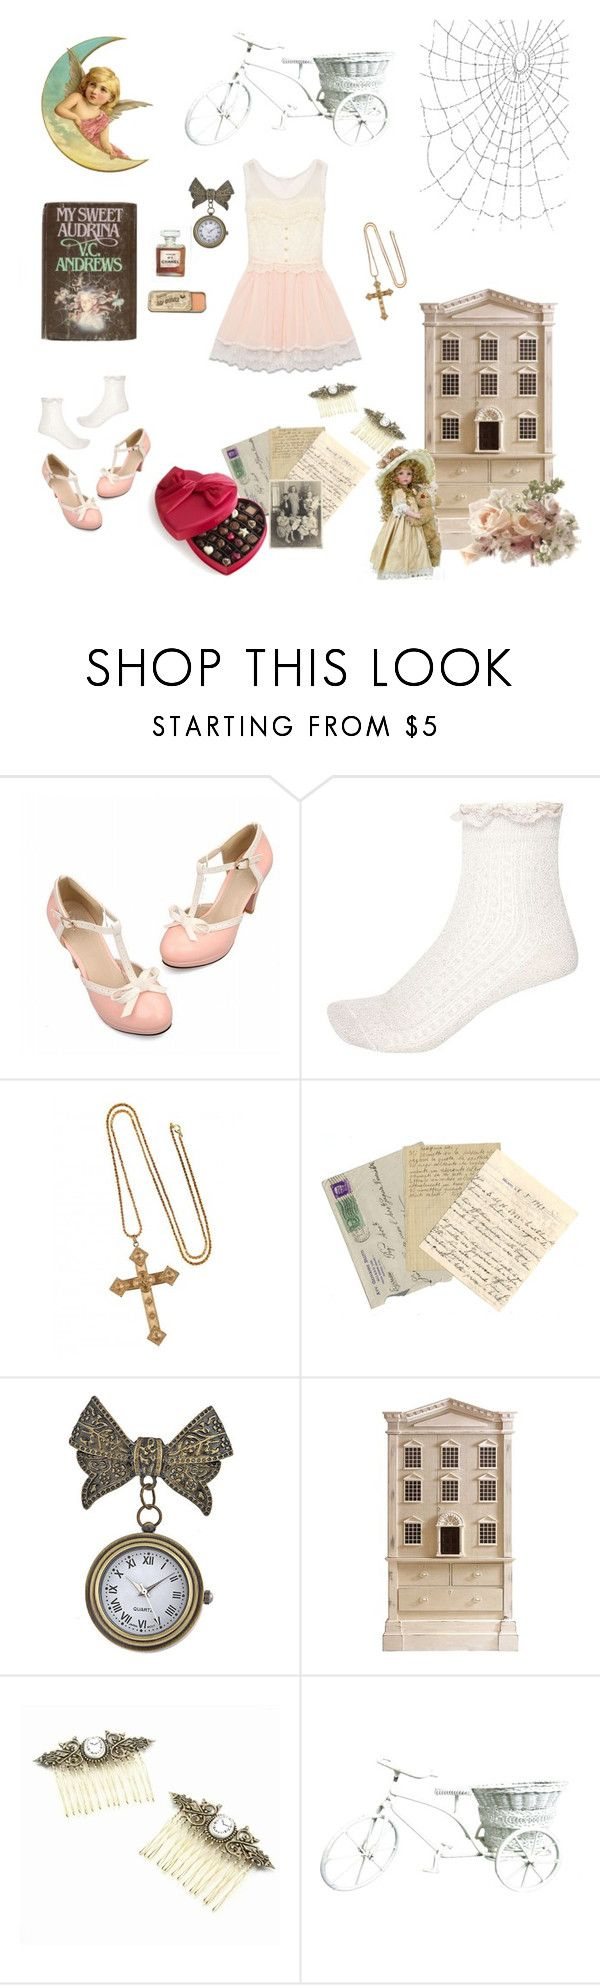 """""""My Sweet Audrina"""" by sweetcherrycola ❤ liked on Polyvore featuring River Island, Chanel, Andrew Martin and Dollhouse"""